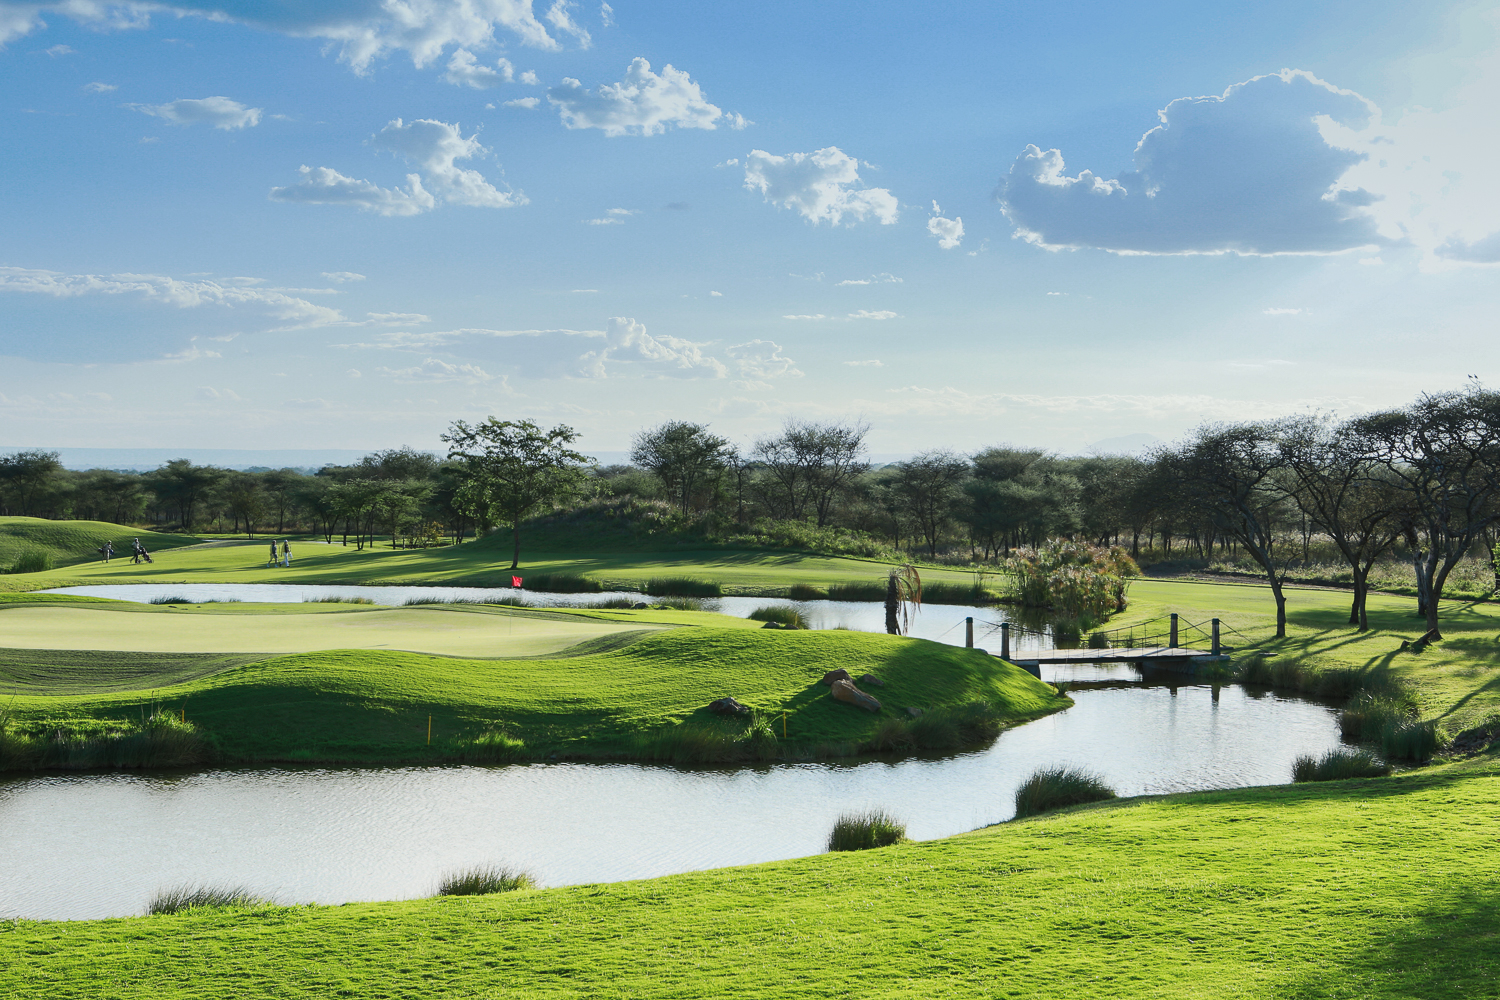 The beautiful bridge that takes you onto the island green at the 18th